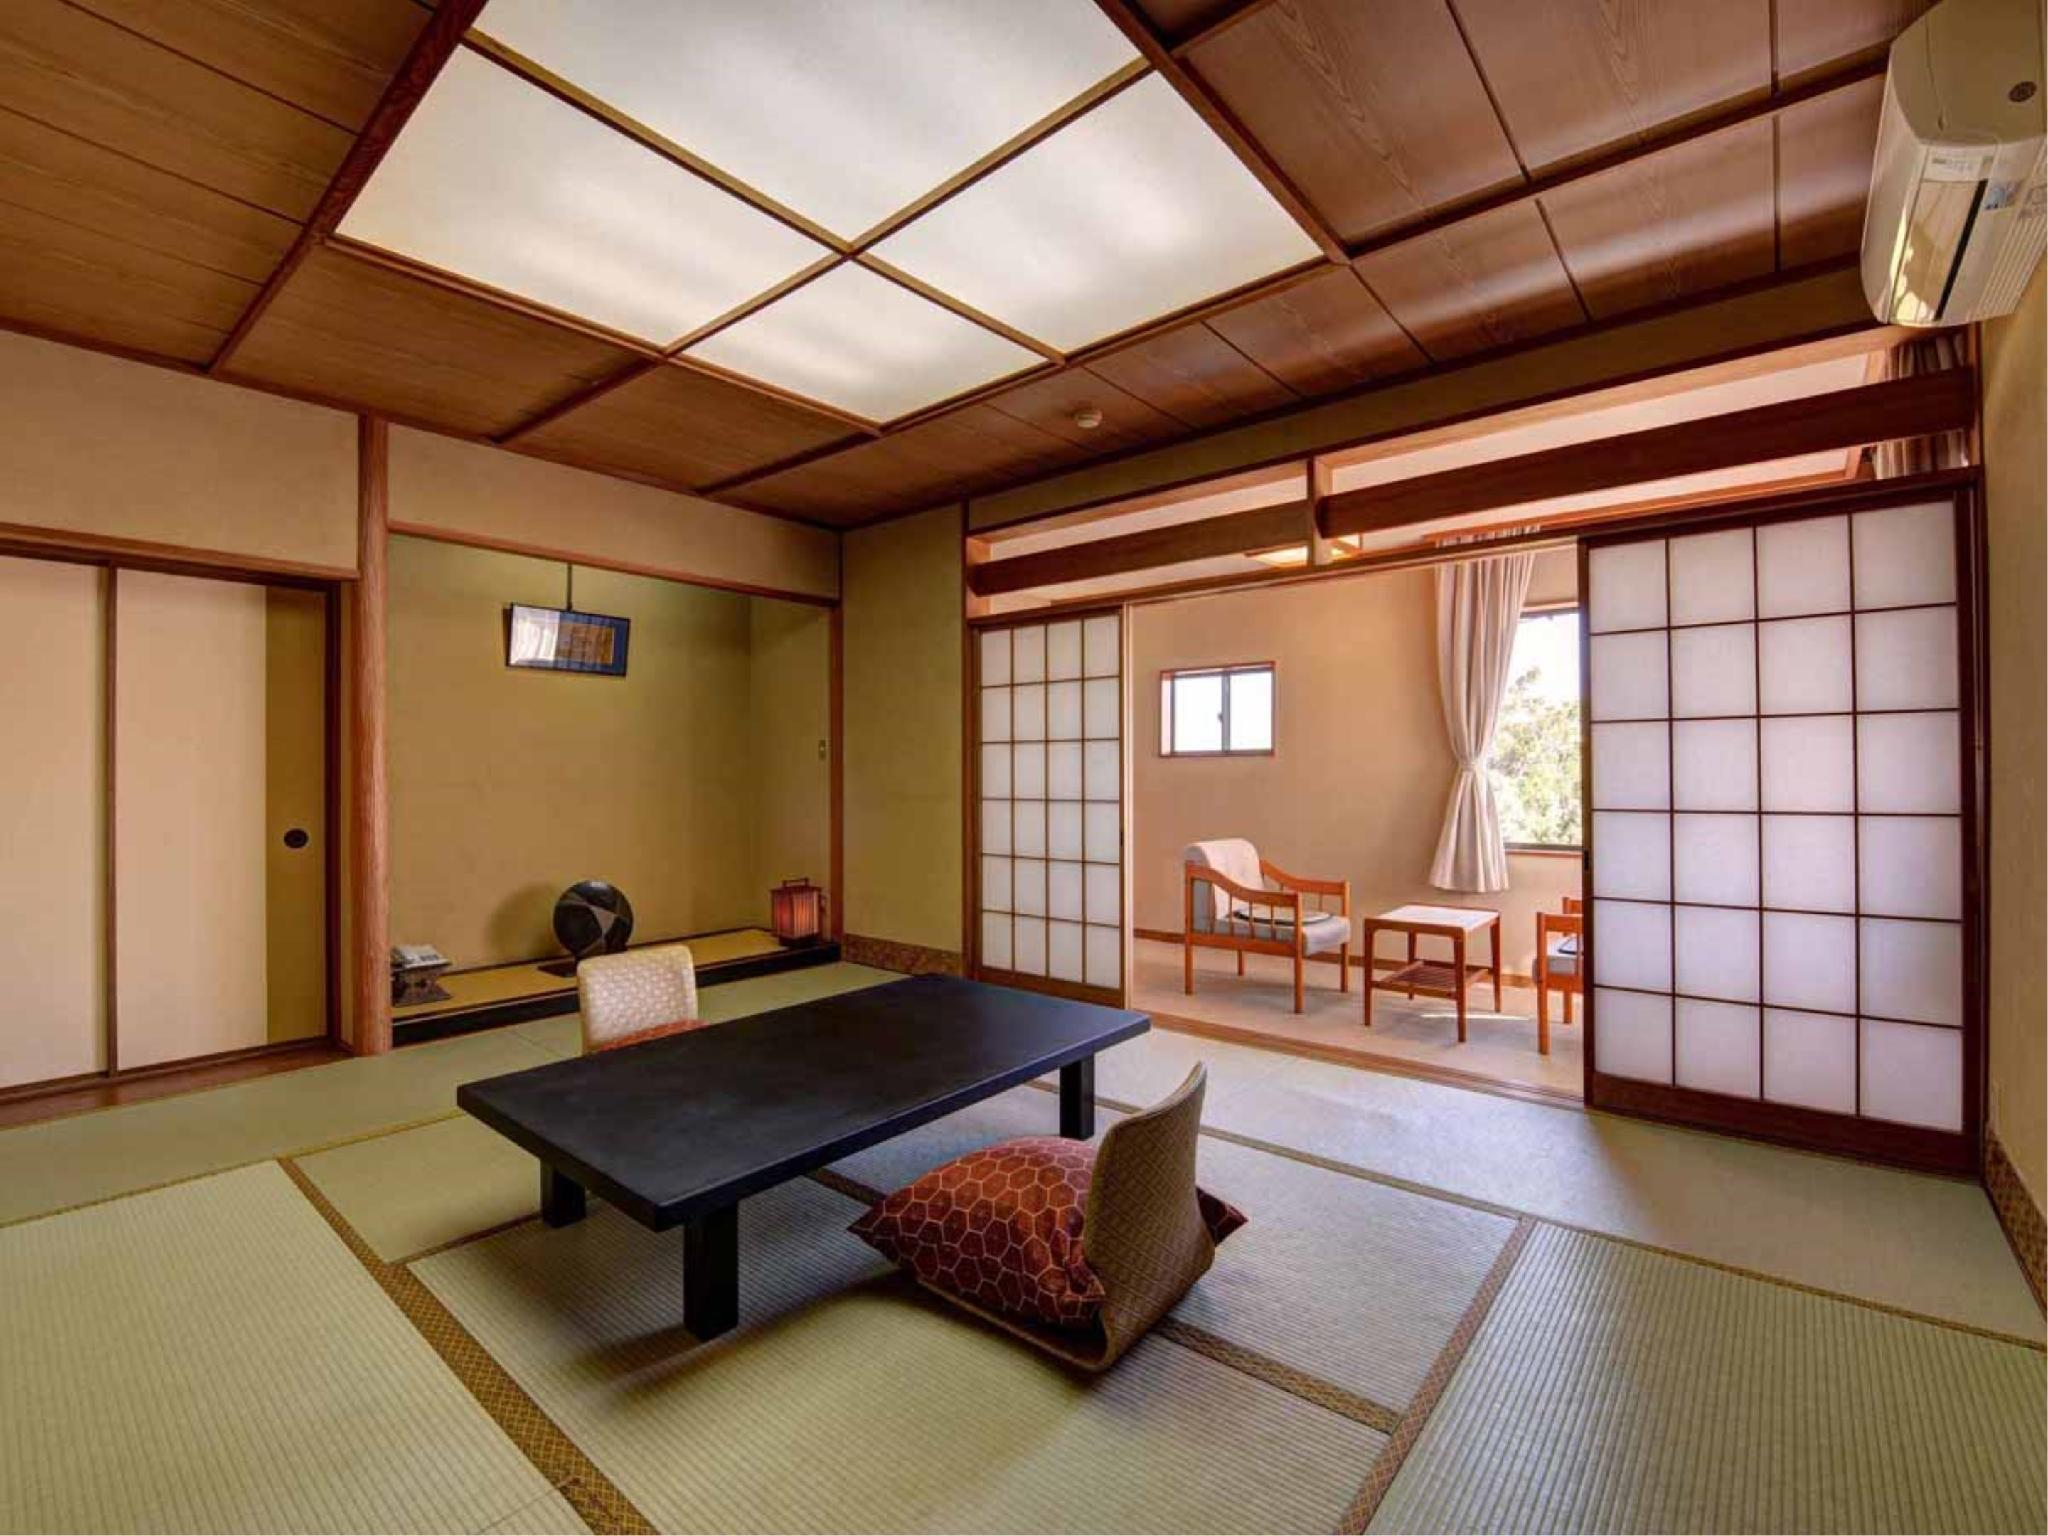 다다미 객실(본관/저층 플로어) (Japanese-style Room (Lower Floors, Main Building))